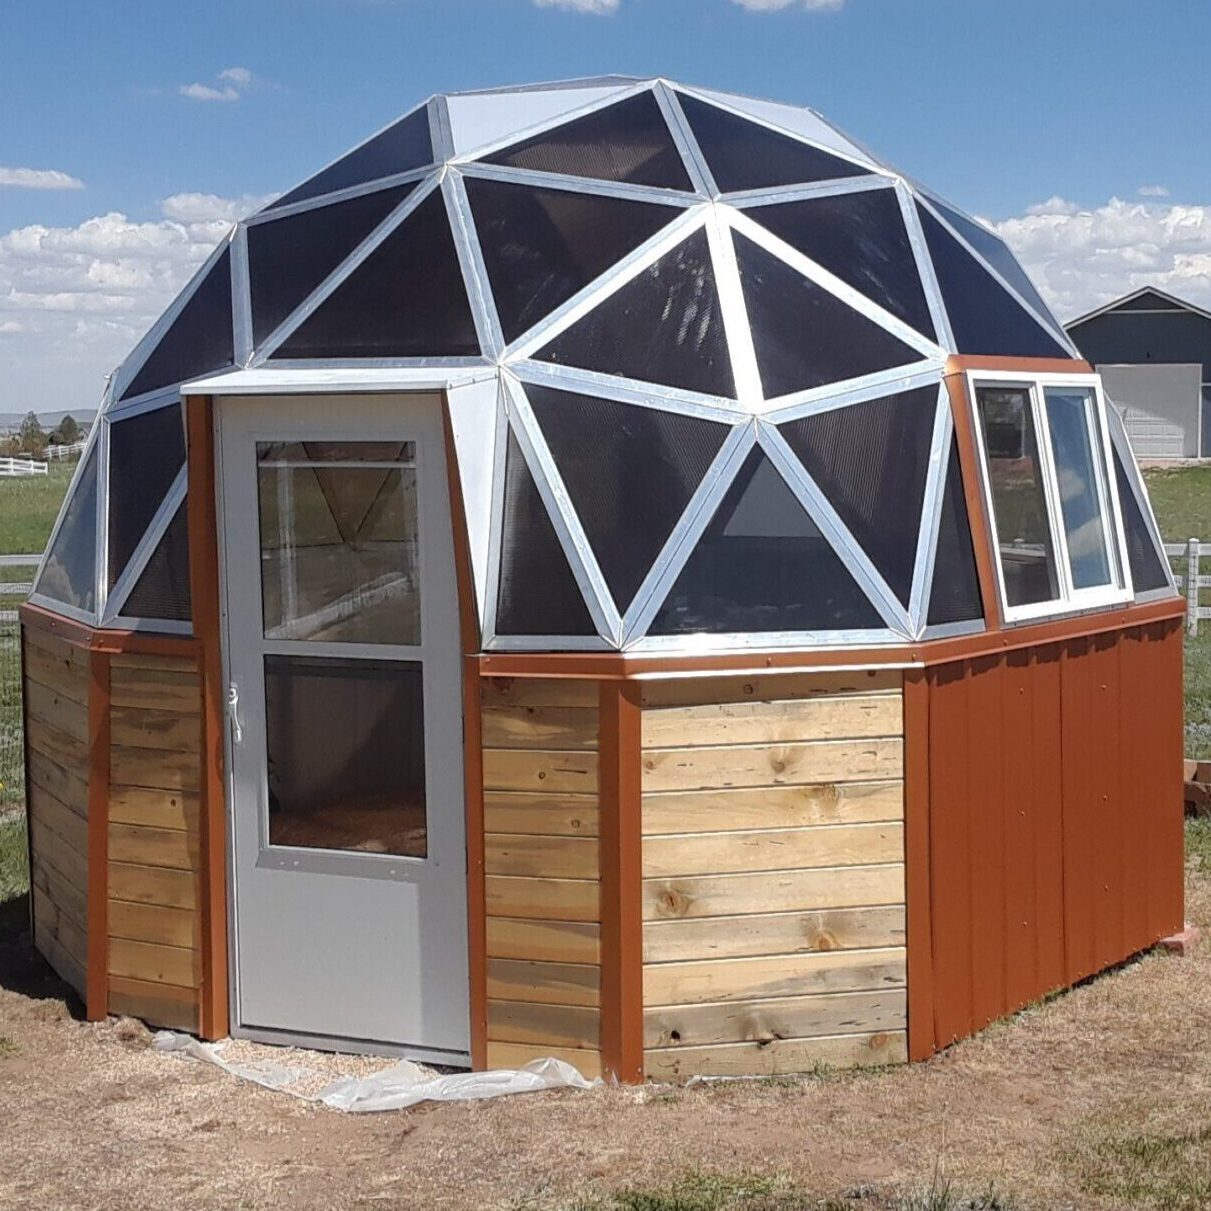 Dome Creations Greenhouse